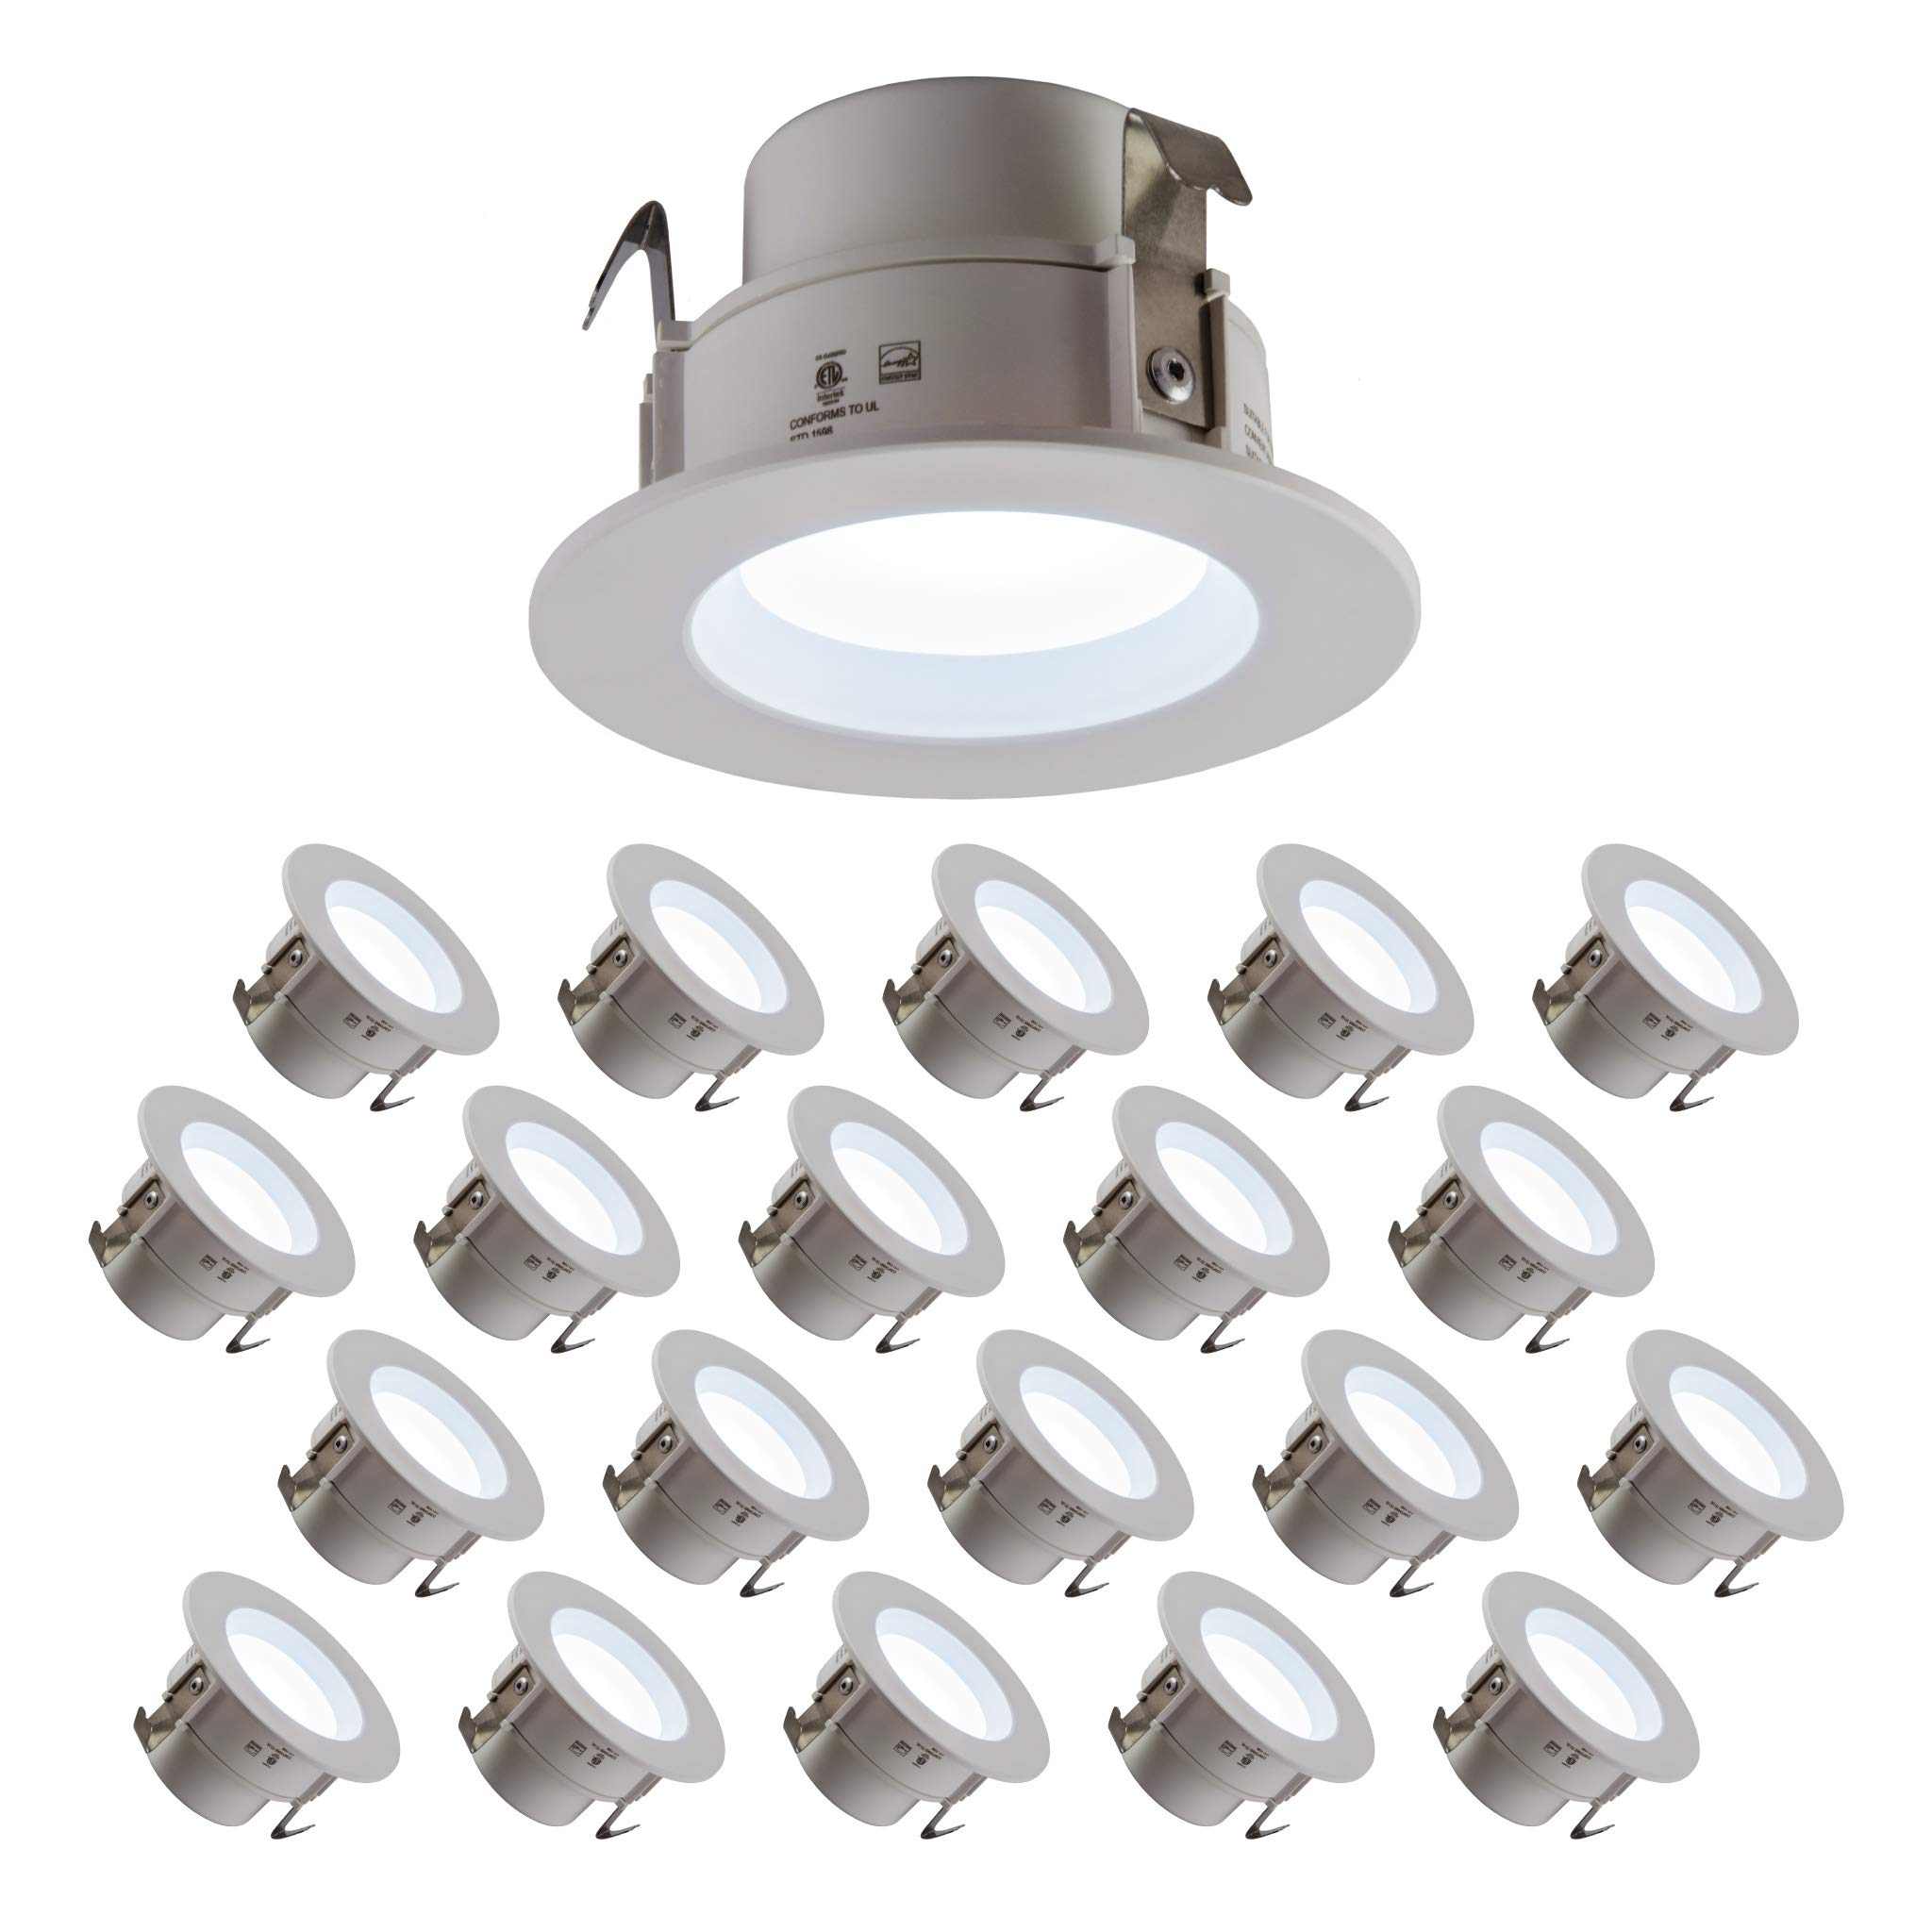 LED 4'' Downlight 10W, 120V, 665 Lumens, CRI>90, Dimmable, Energy Star, Title 24, JA-8 Compliant and UL Listed; 5 Year Warranty; E26 Base Orange Connector; Day Light 5000K- (20 Pack)